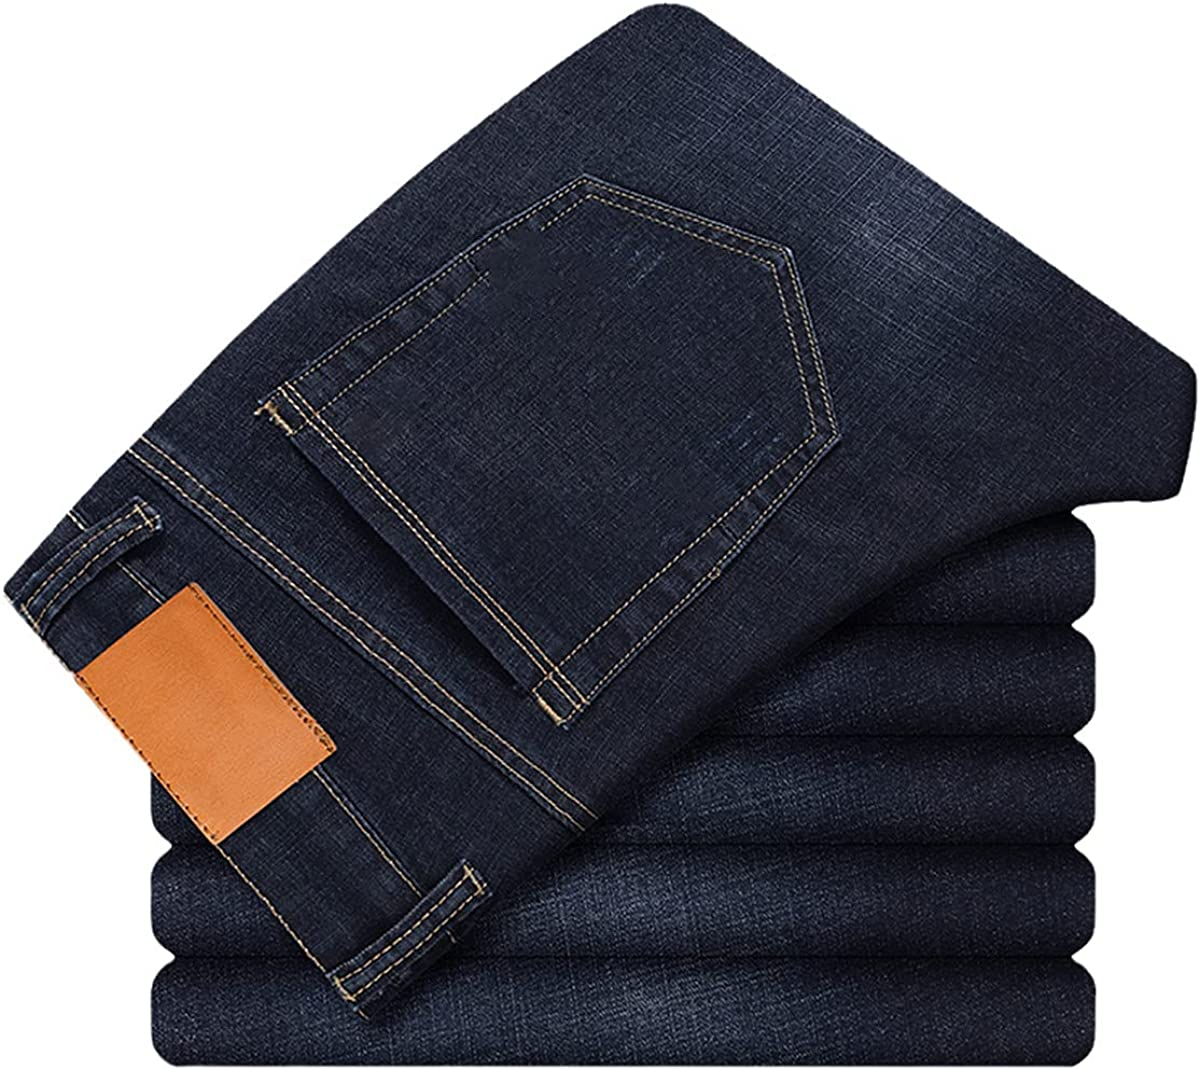 Men's Thin Jeans Summer Business Casual Slim Stretch Classic Trousers